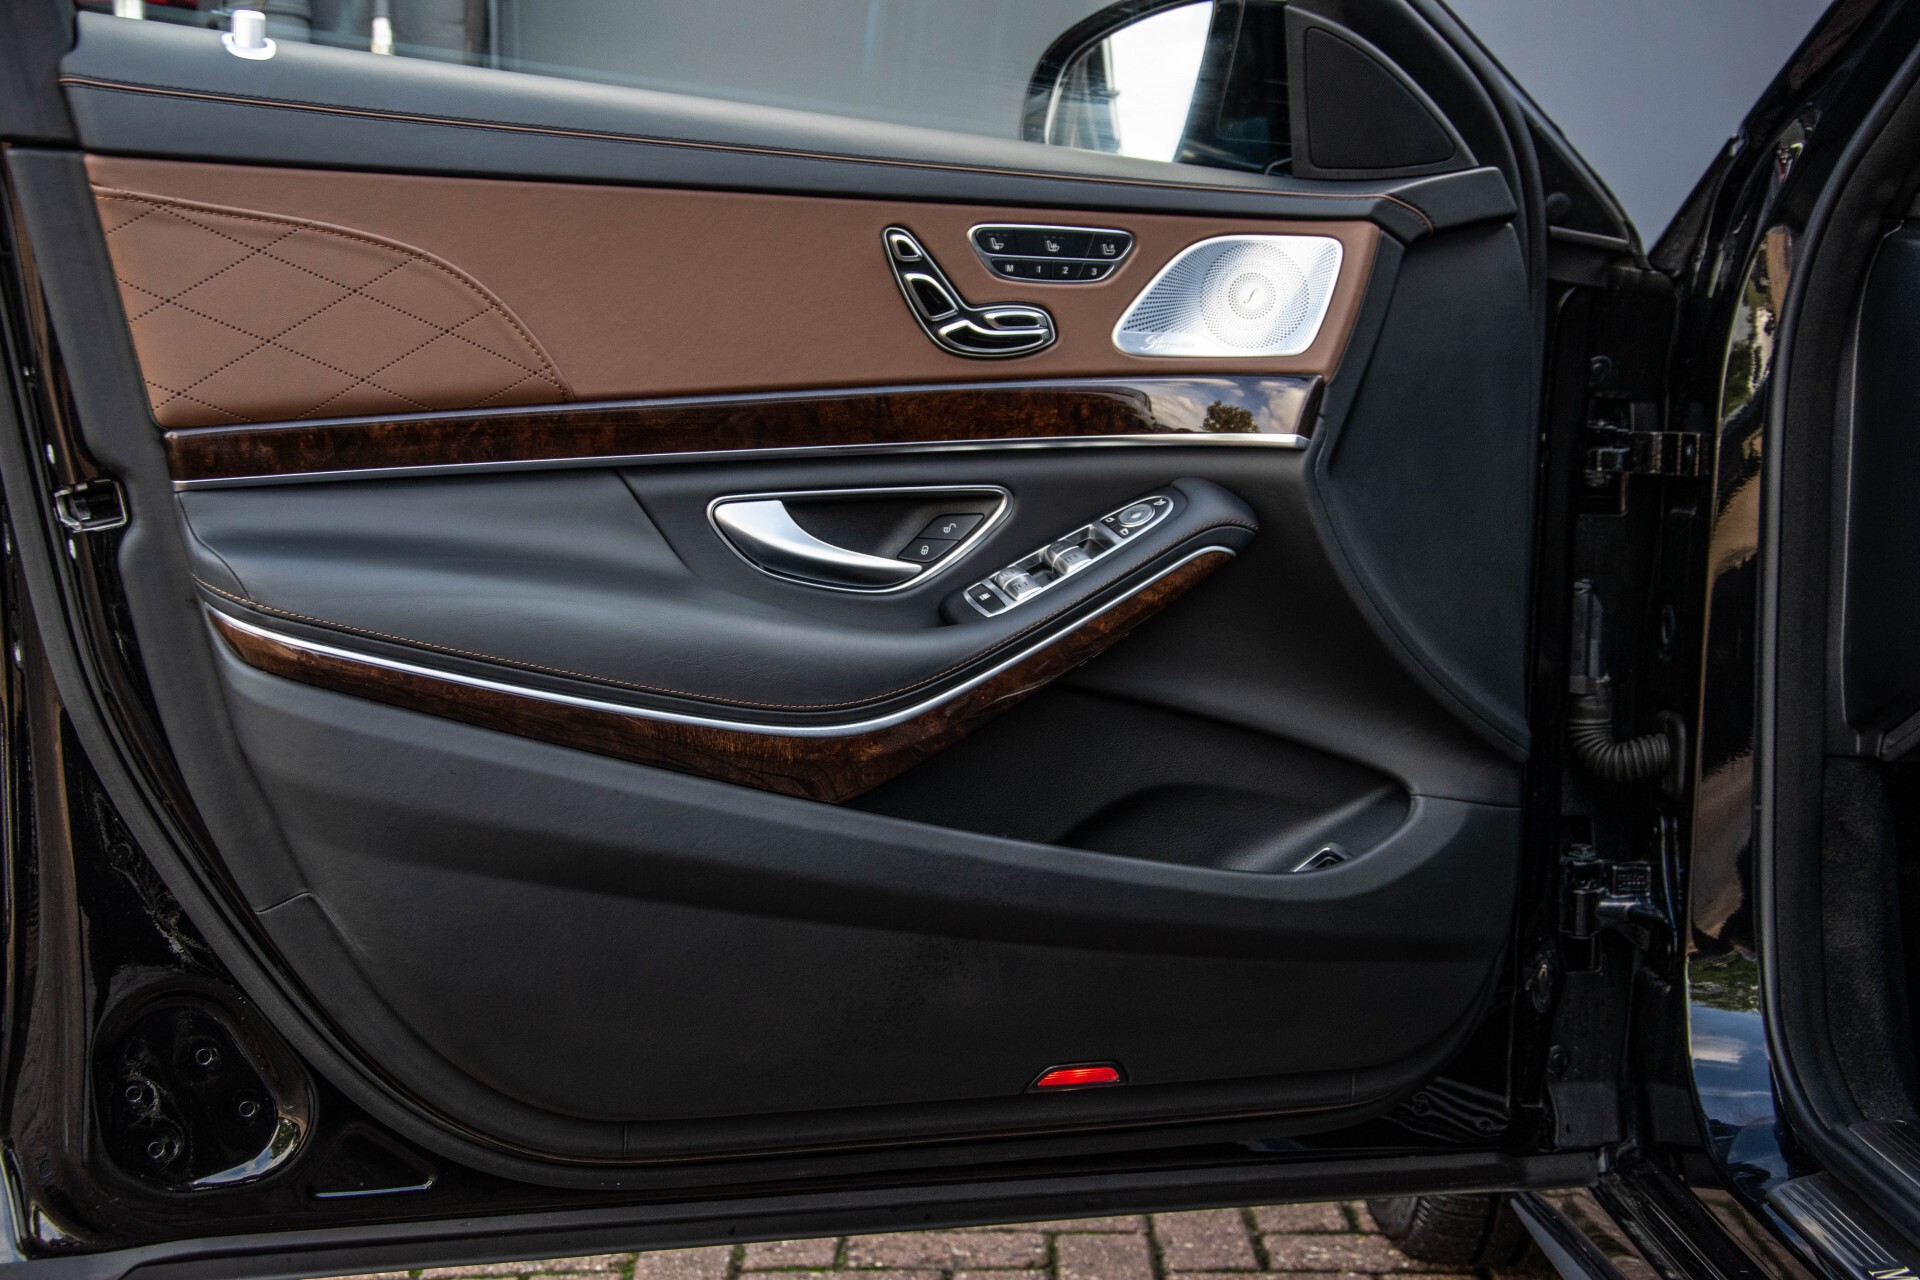 Mercedes-Benz S-Klasse 560 4-M Lang AMG Plus Exclusive Entertainment/Massage Aut9 Foto 30